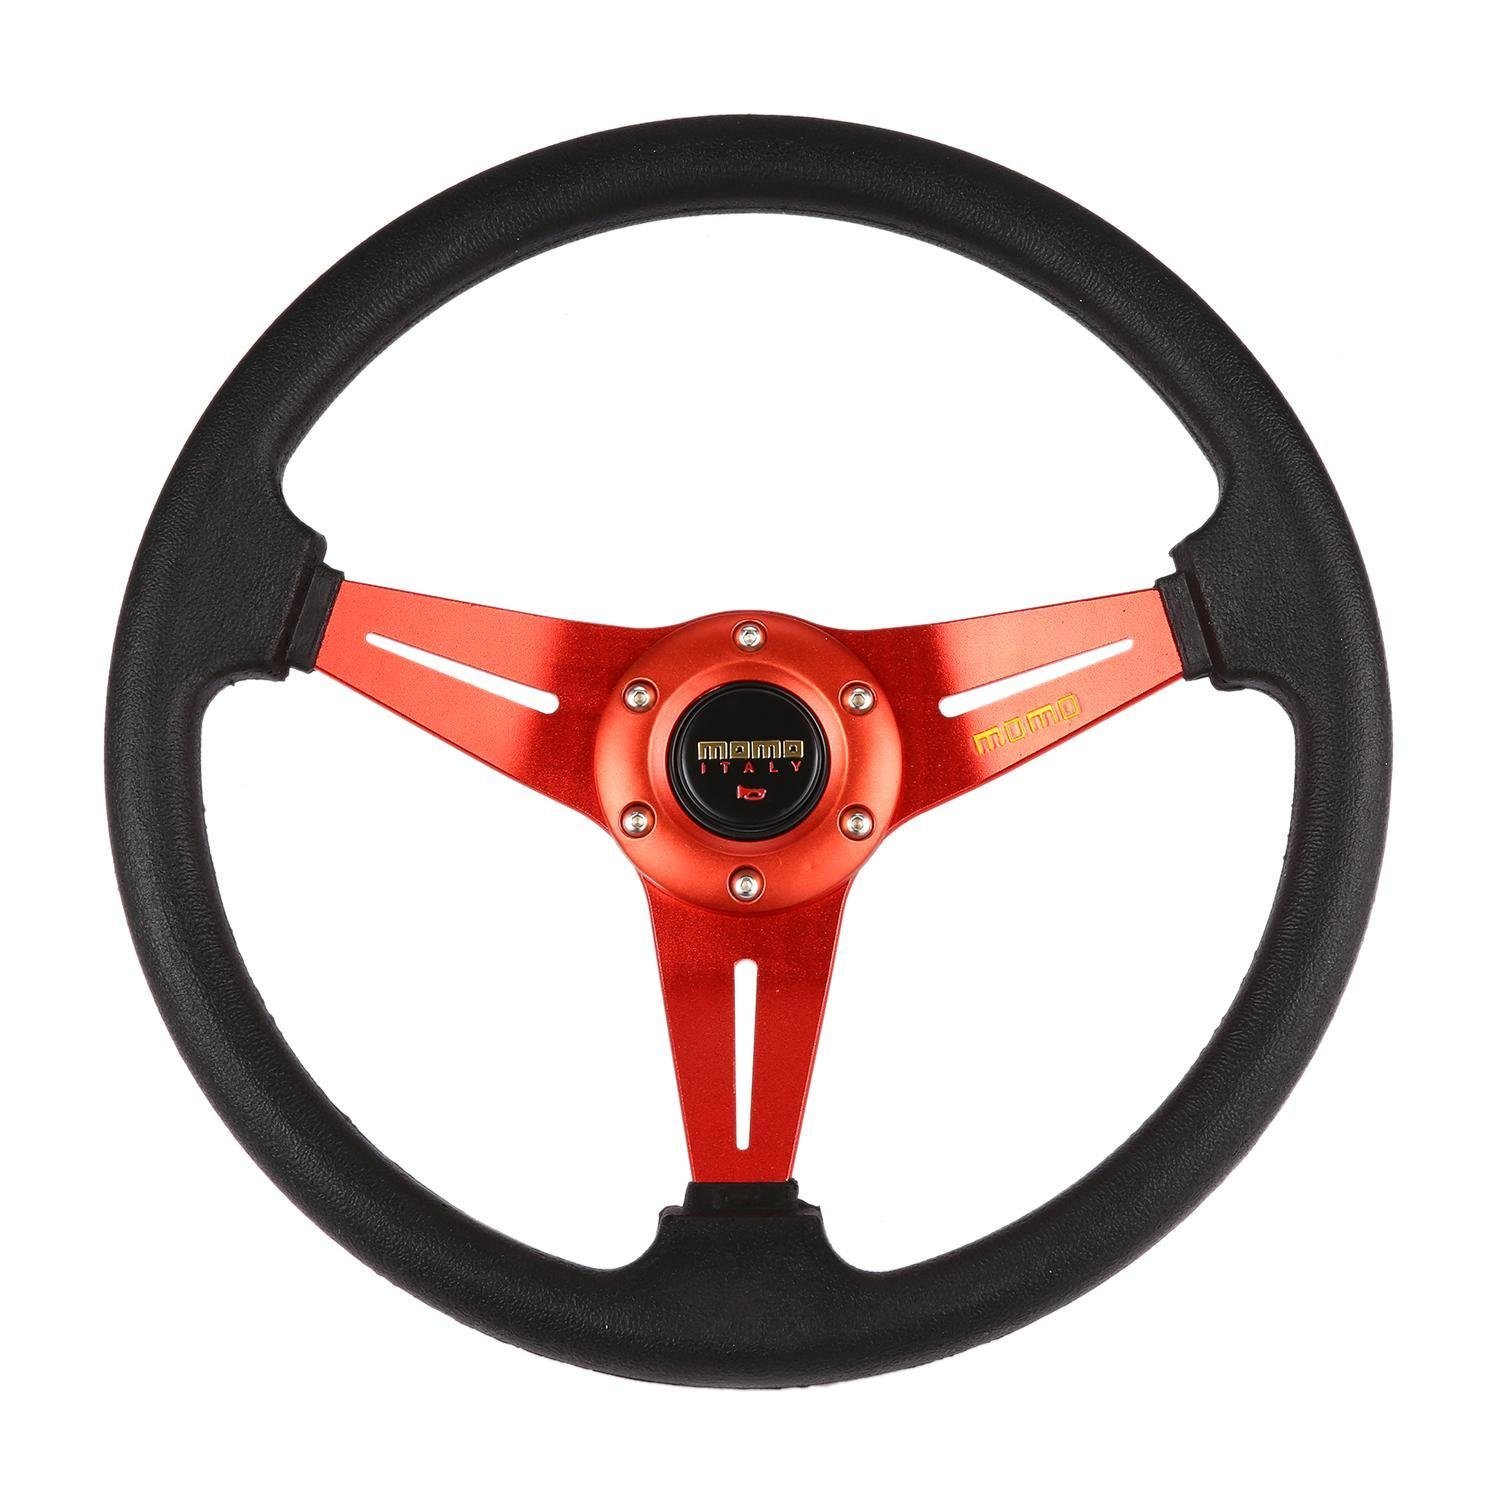 Fits Carbon Red Stitch 320MM Steering Wheel PVC Leather JDM 6 Bolt Hub Adapter